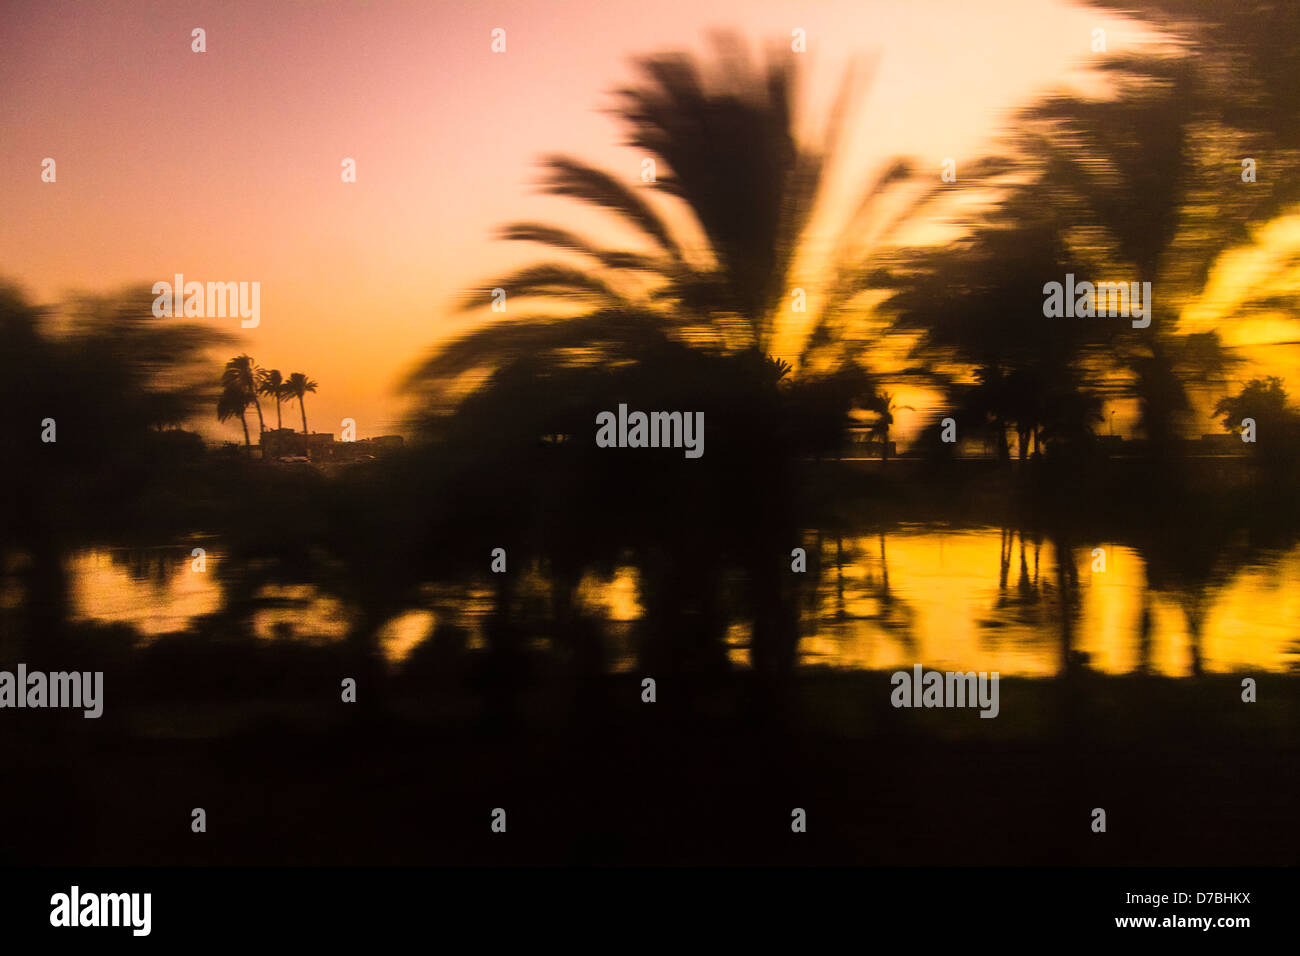 Abstract silhouette of palm grove by the river Nile at late sunset taken from a moving train. Egypt Stock Photo